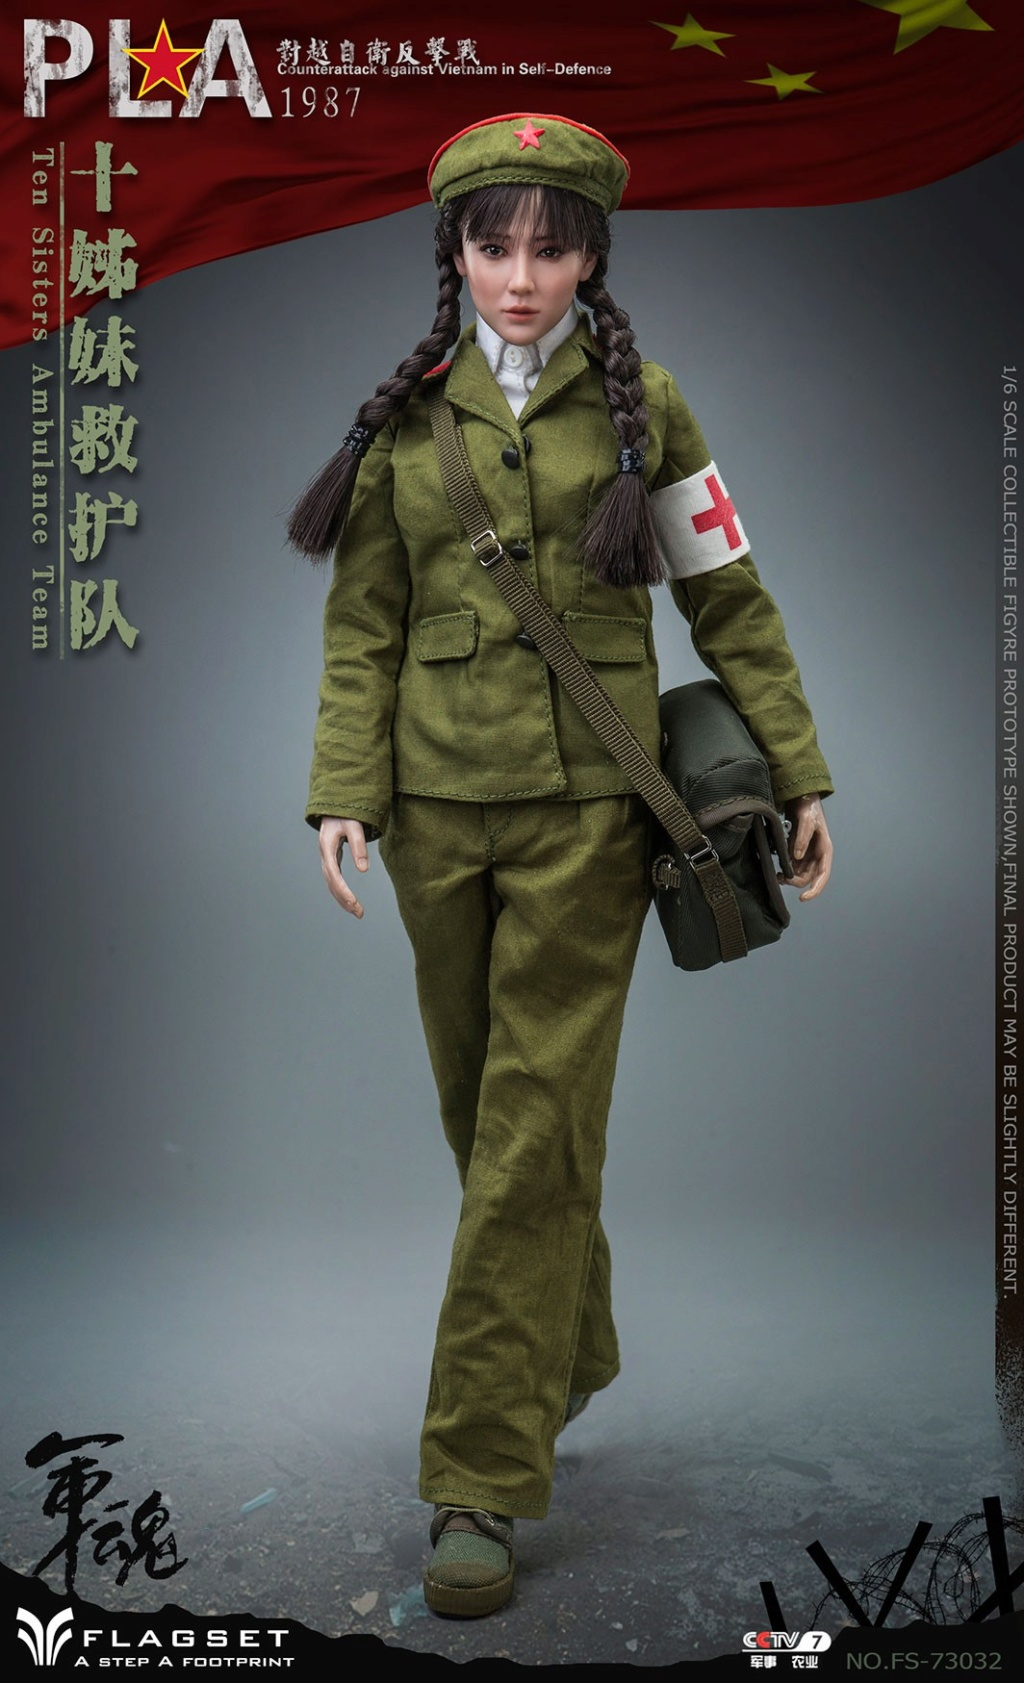 CounterAttack - NEW PRODUCT: Flagset: 1/6 counterattack against Vietnam-female soldiers of the ten sisters rescue team of the Chinese People's Liberation Army (FS73032#) 06540910